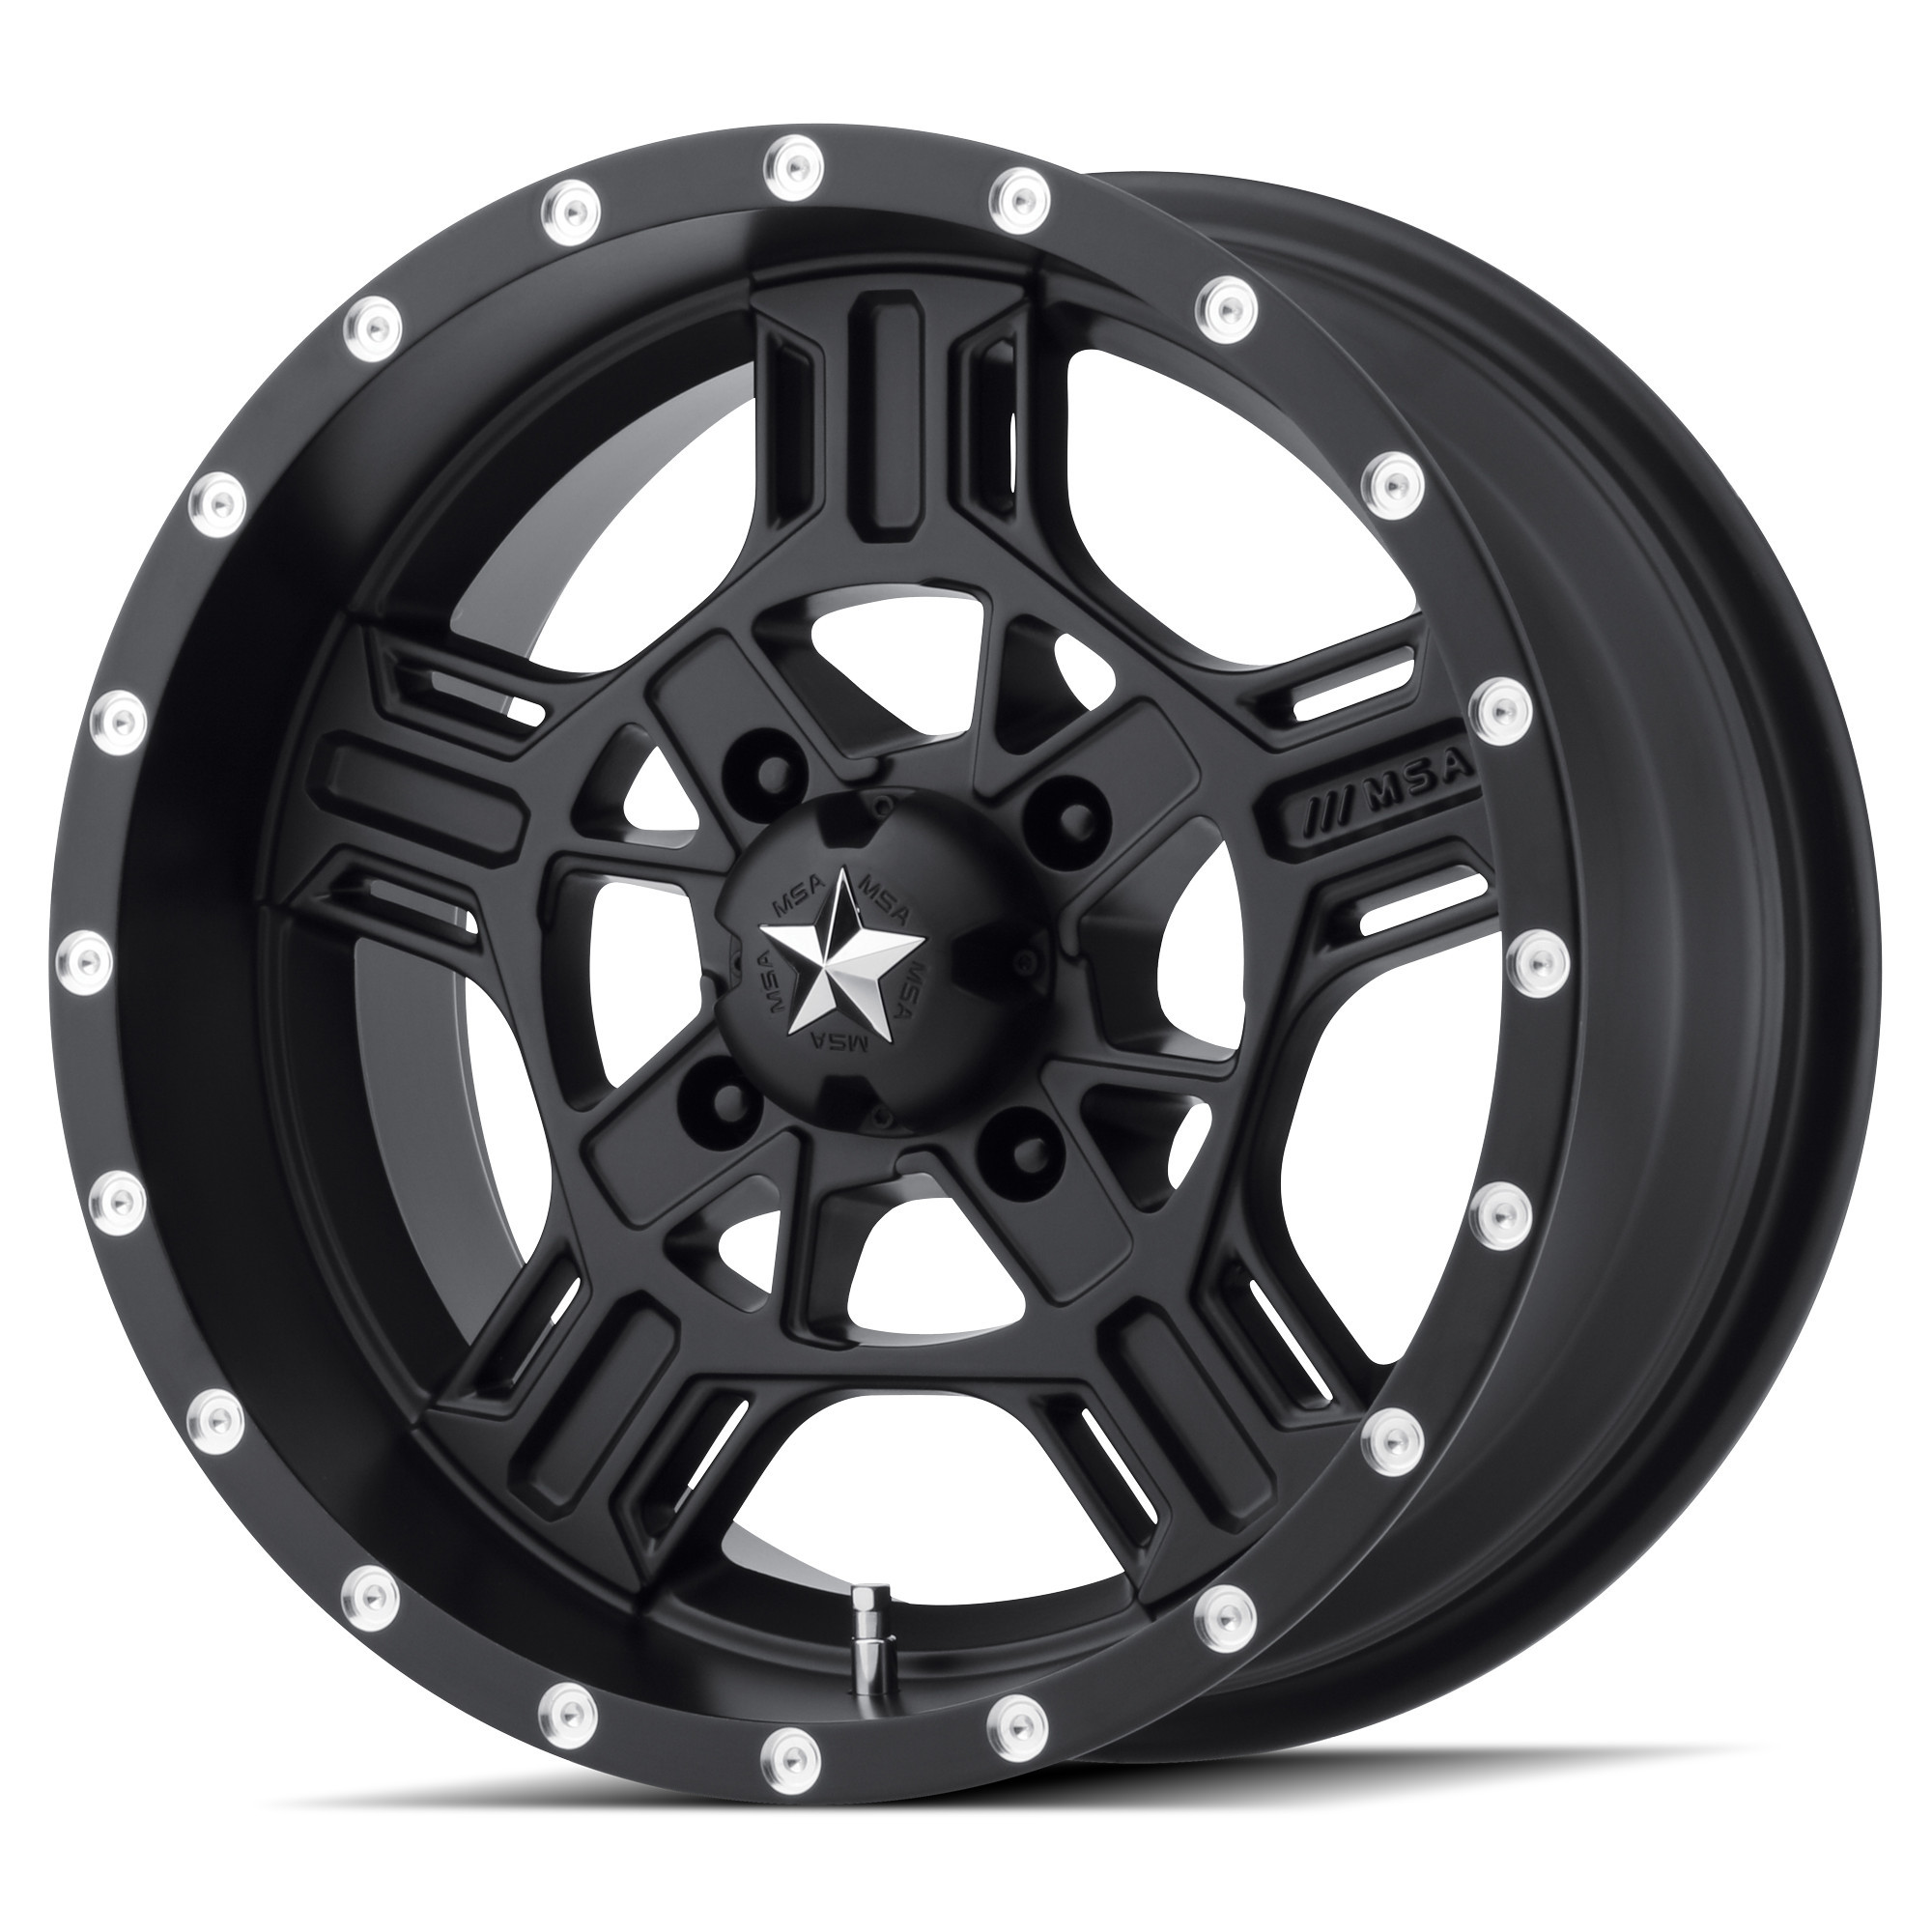 MSA 16x7 4x156 M32 Axe Satin Black vannesarja Polaris